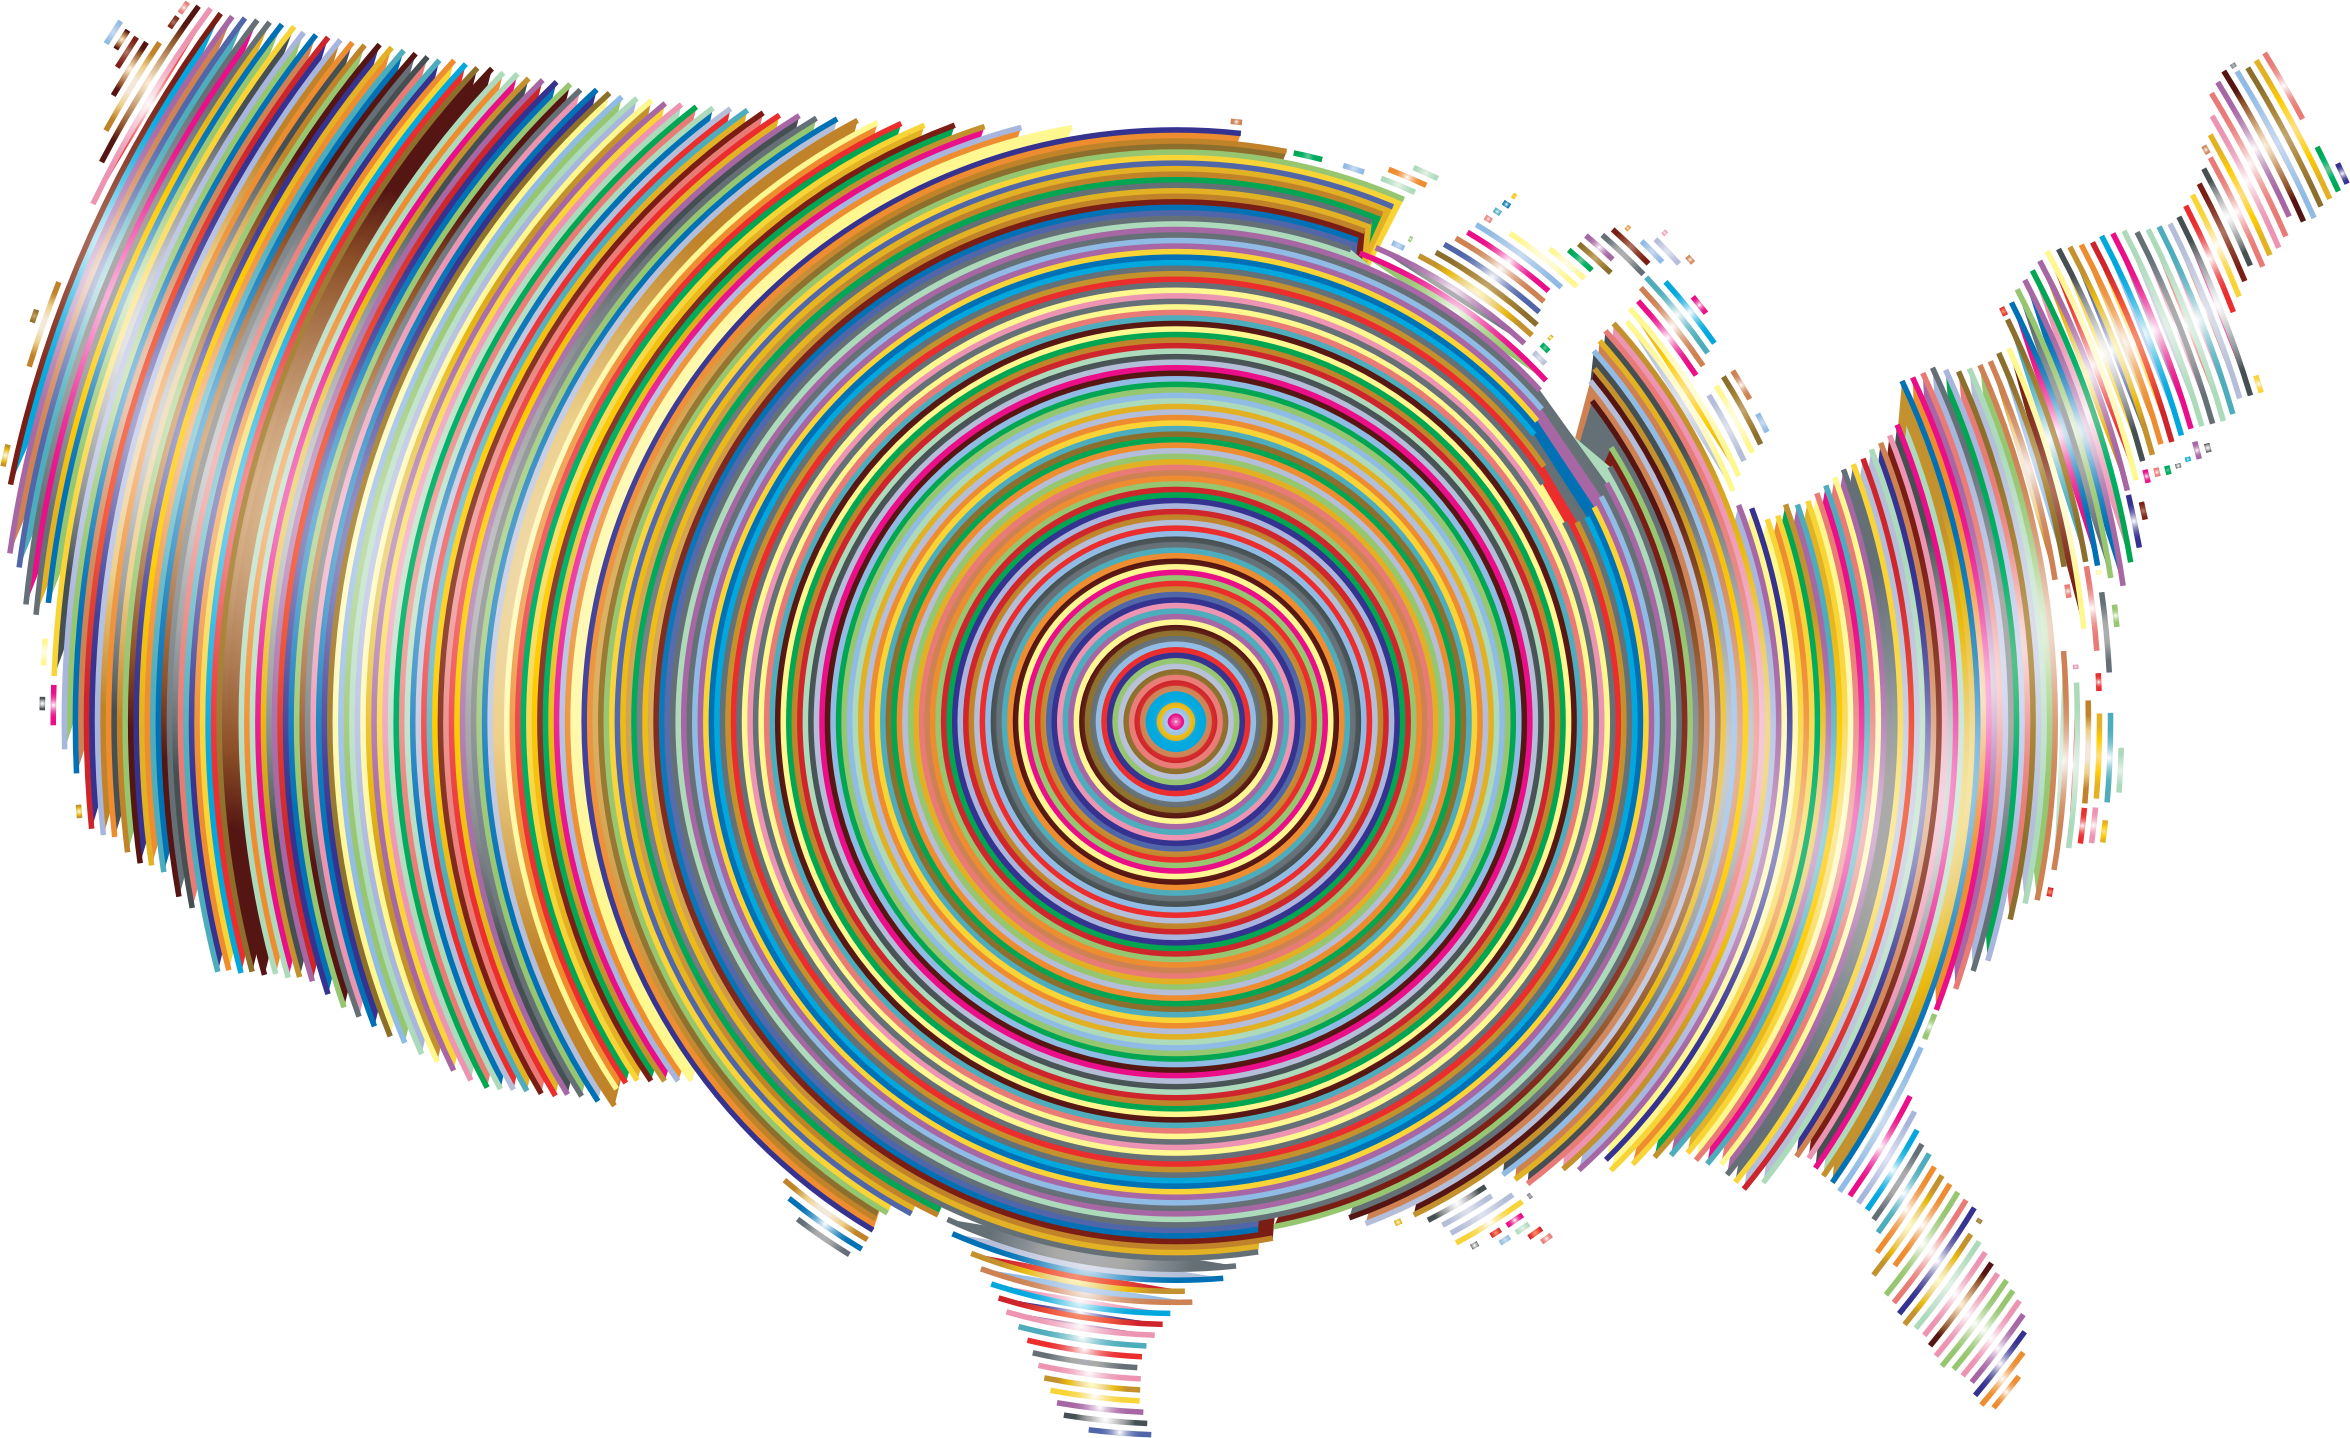 Prismatic United States Concentric Circles 2 by GDJ